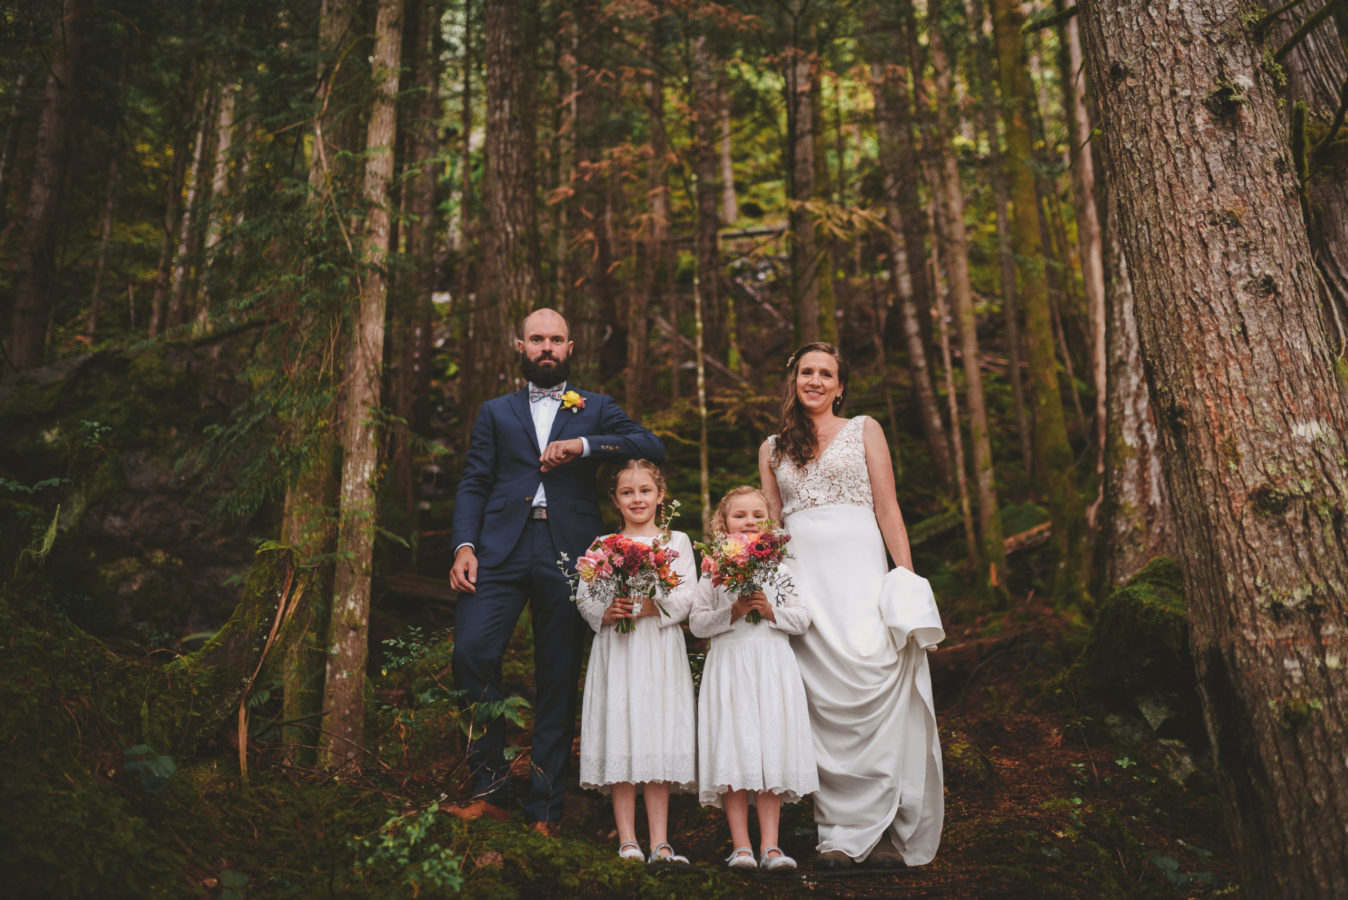 bride, groom and two flower girls standing among tall trees in the forest for a portrait